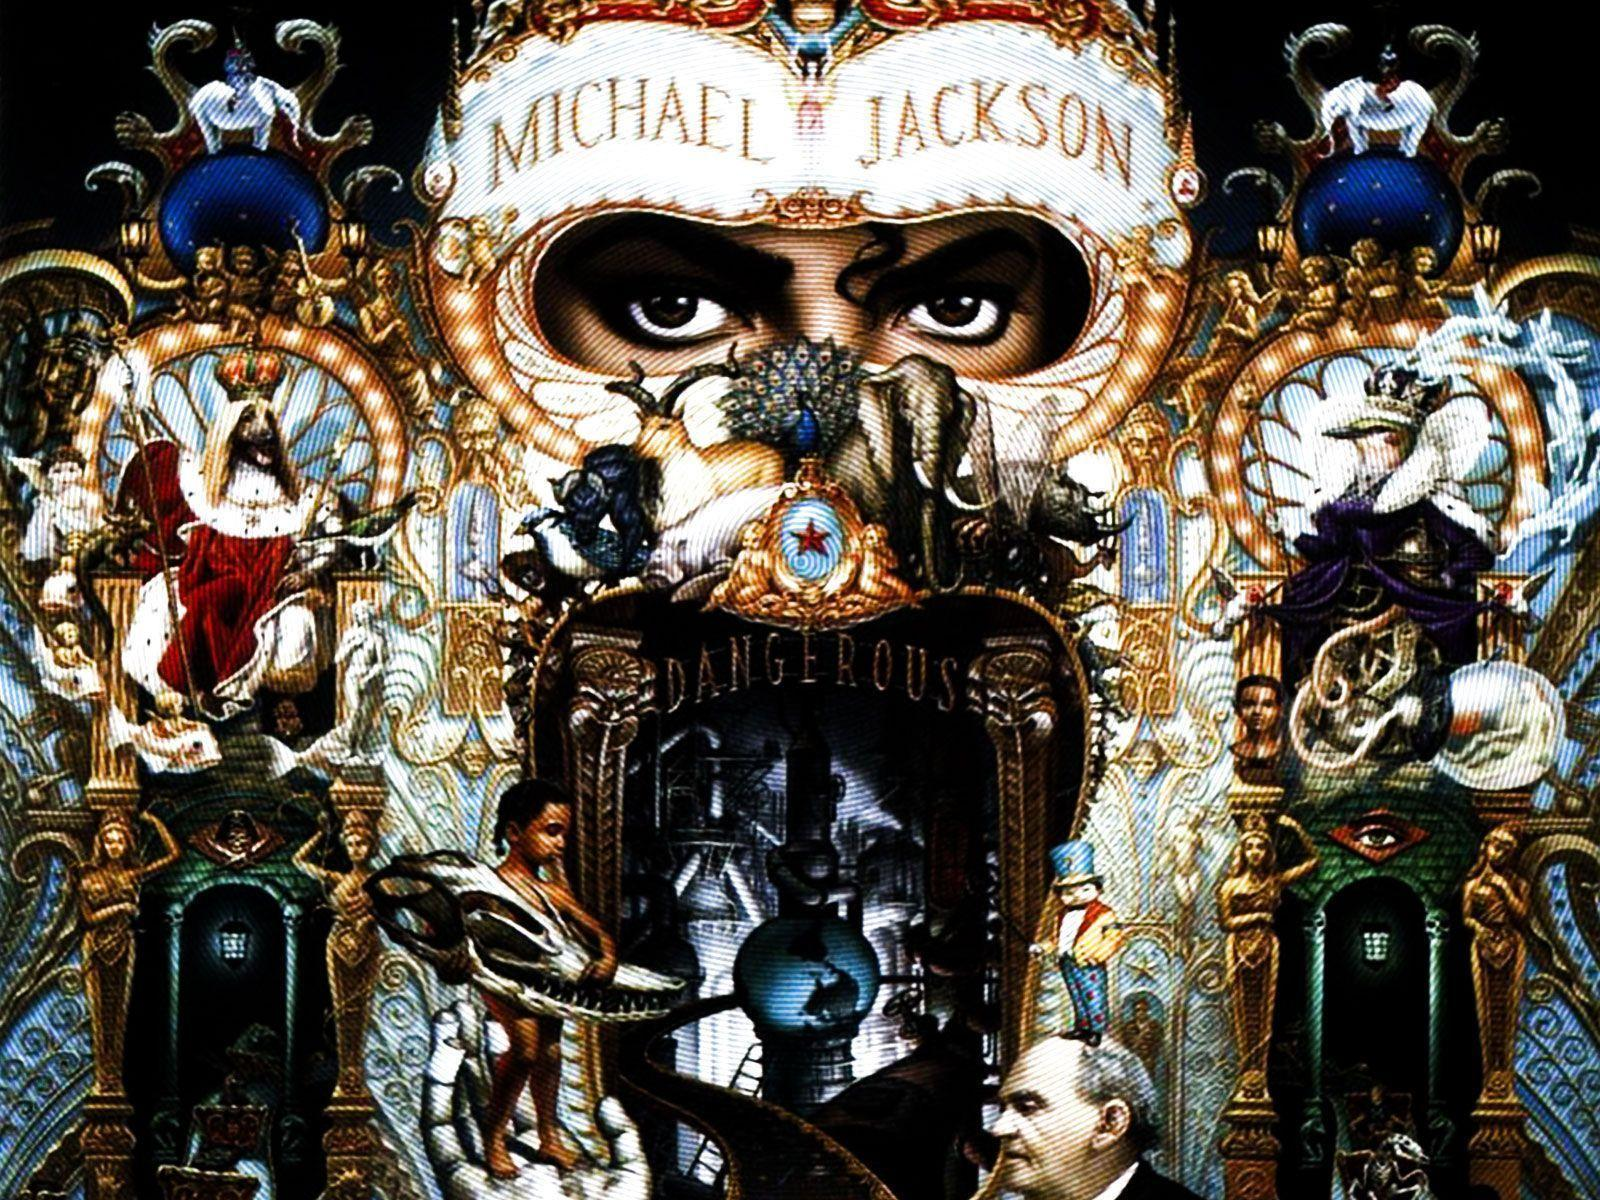 Michael Jackson Dangerous Wallpaper Hd Desktop 10 HD Wallpapers ...